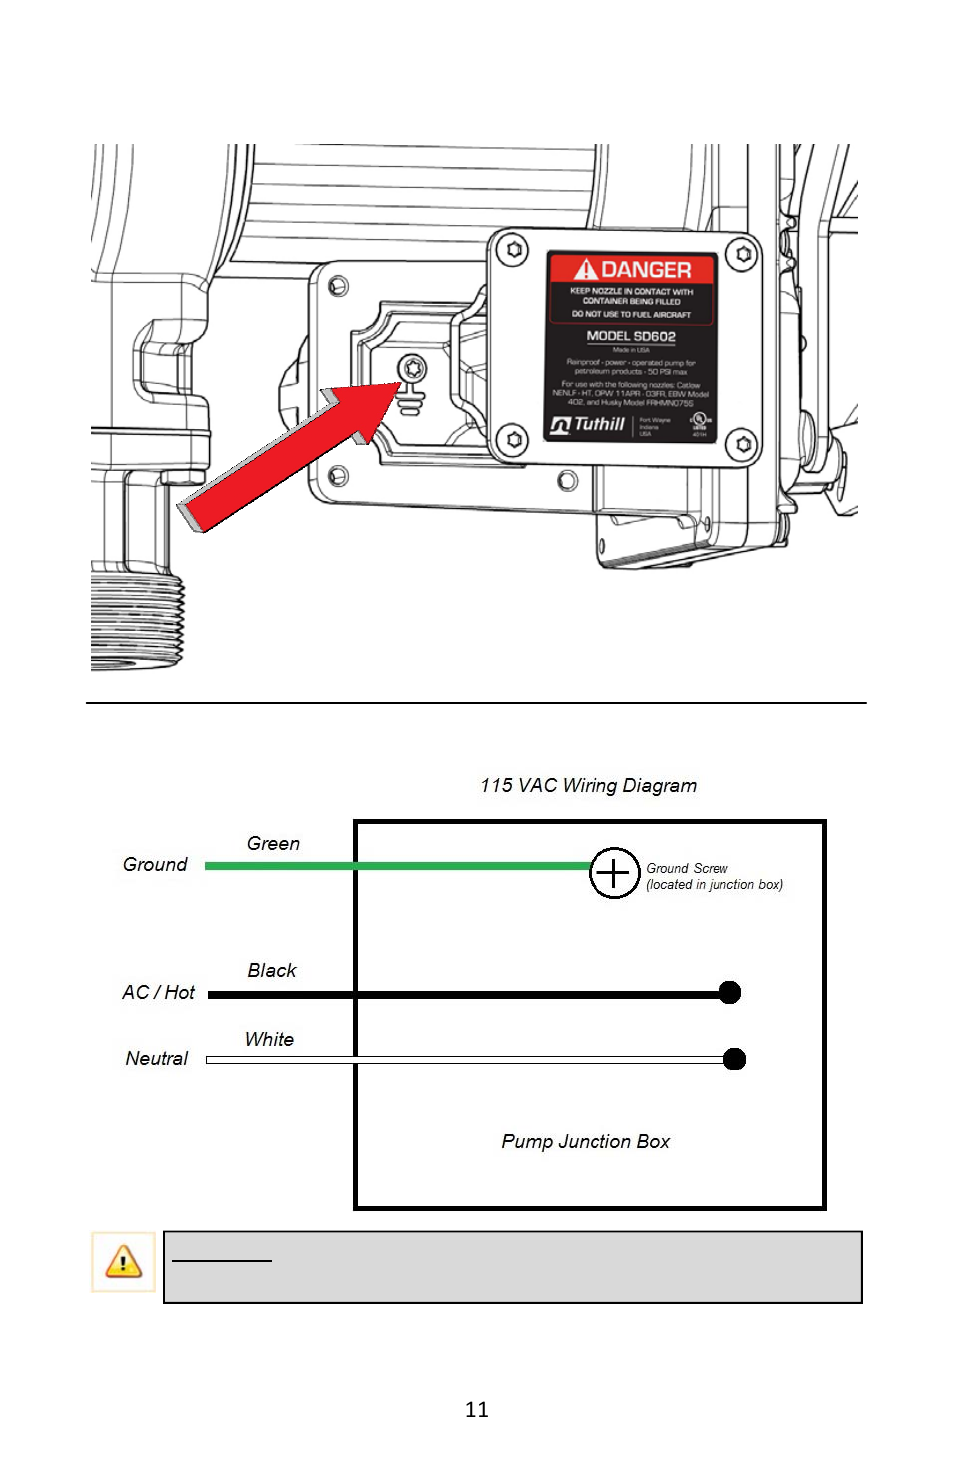 ac wiring diagram, ac pump junction box fill rite fr600g series acac wiring diagram, ac pump junction box fill rite fr600g series ac transfer pumps user manual page 11 80